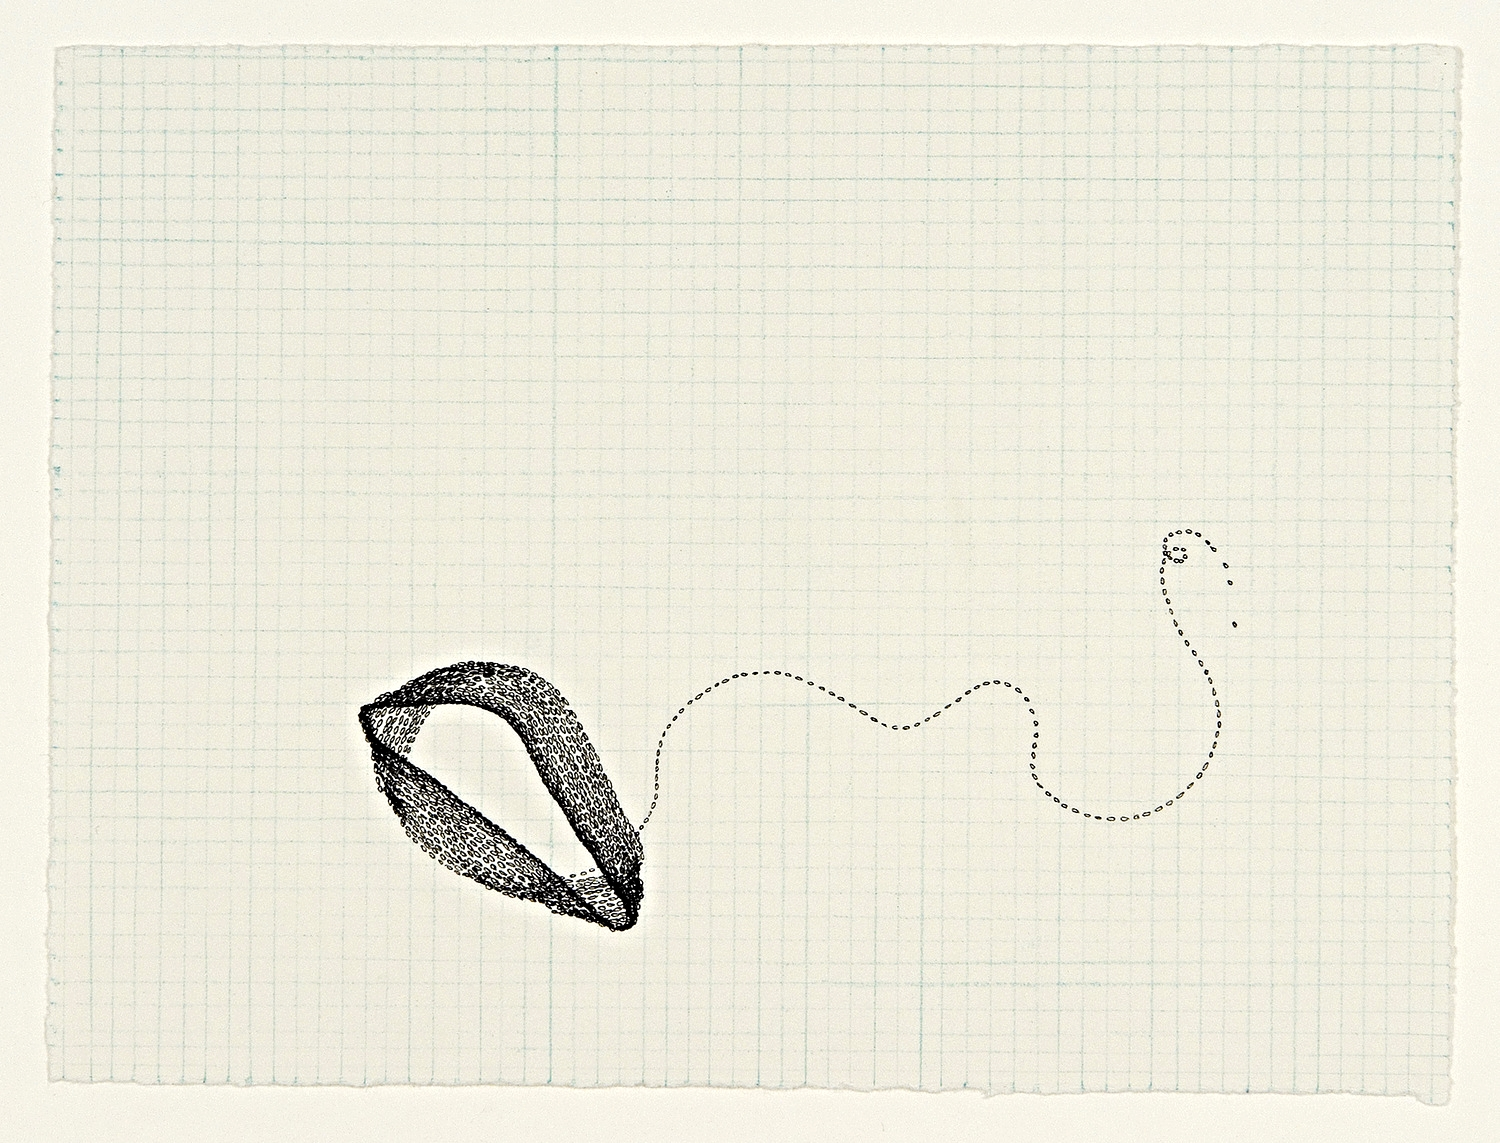 Holon # 9, 2007, ink and colored pencil on paper, 5 x 7 inches